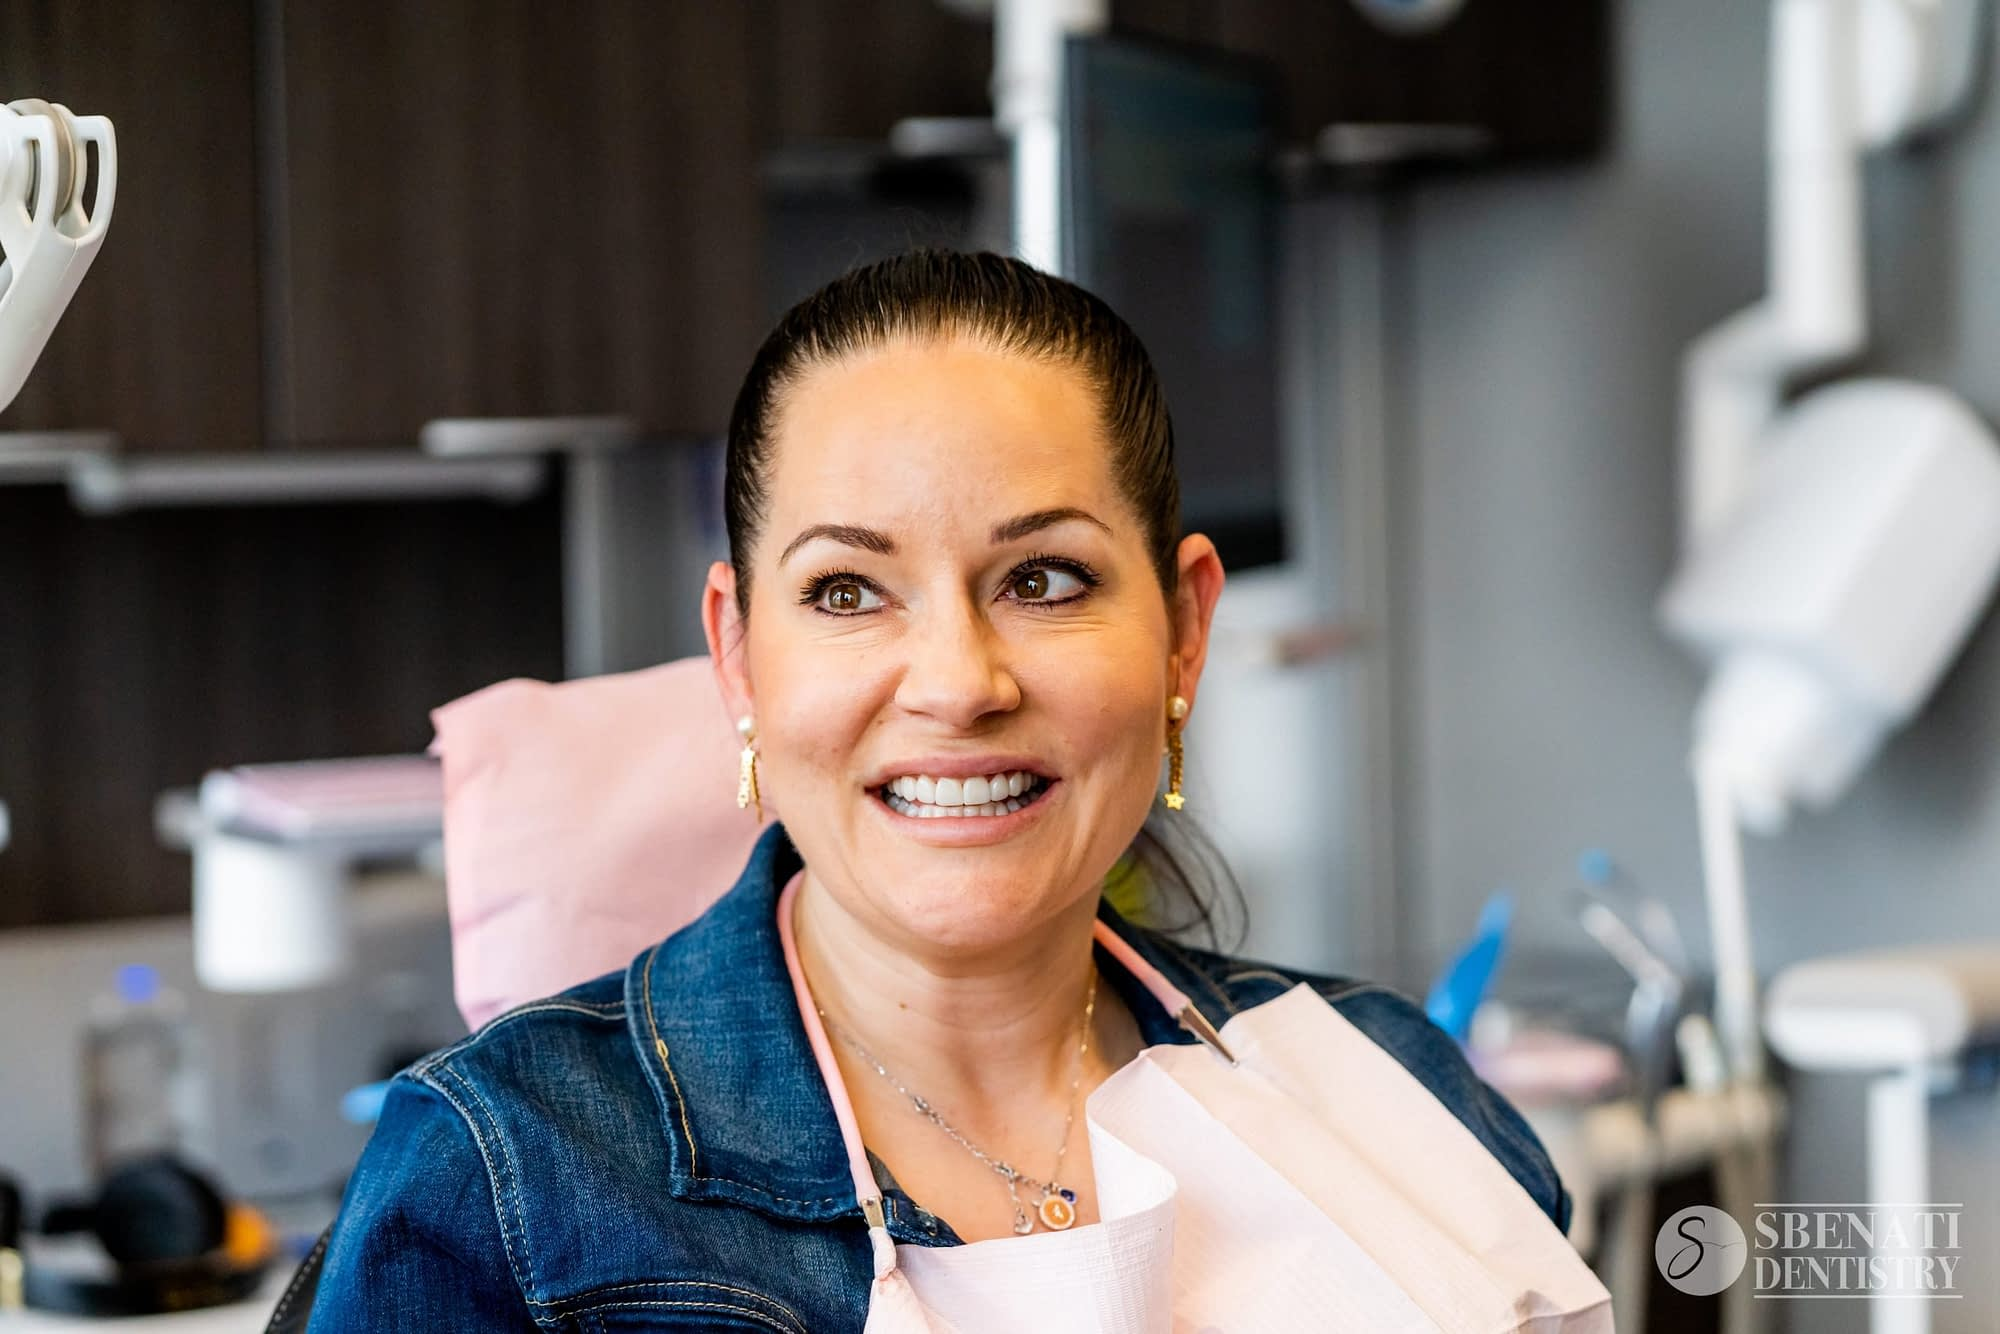 A happy and satisfied patient of london ontario dentist Sbenati Dentistry